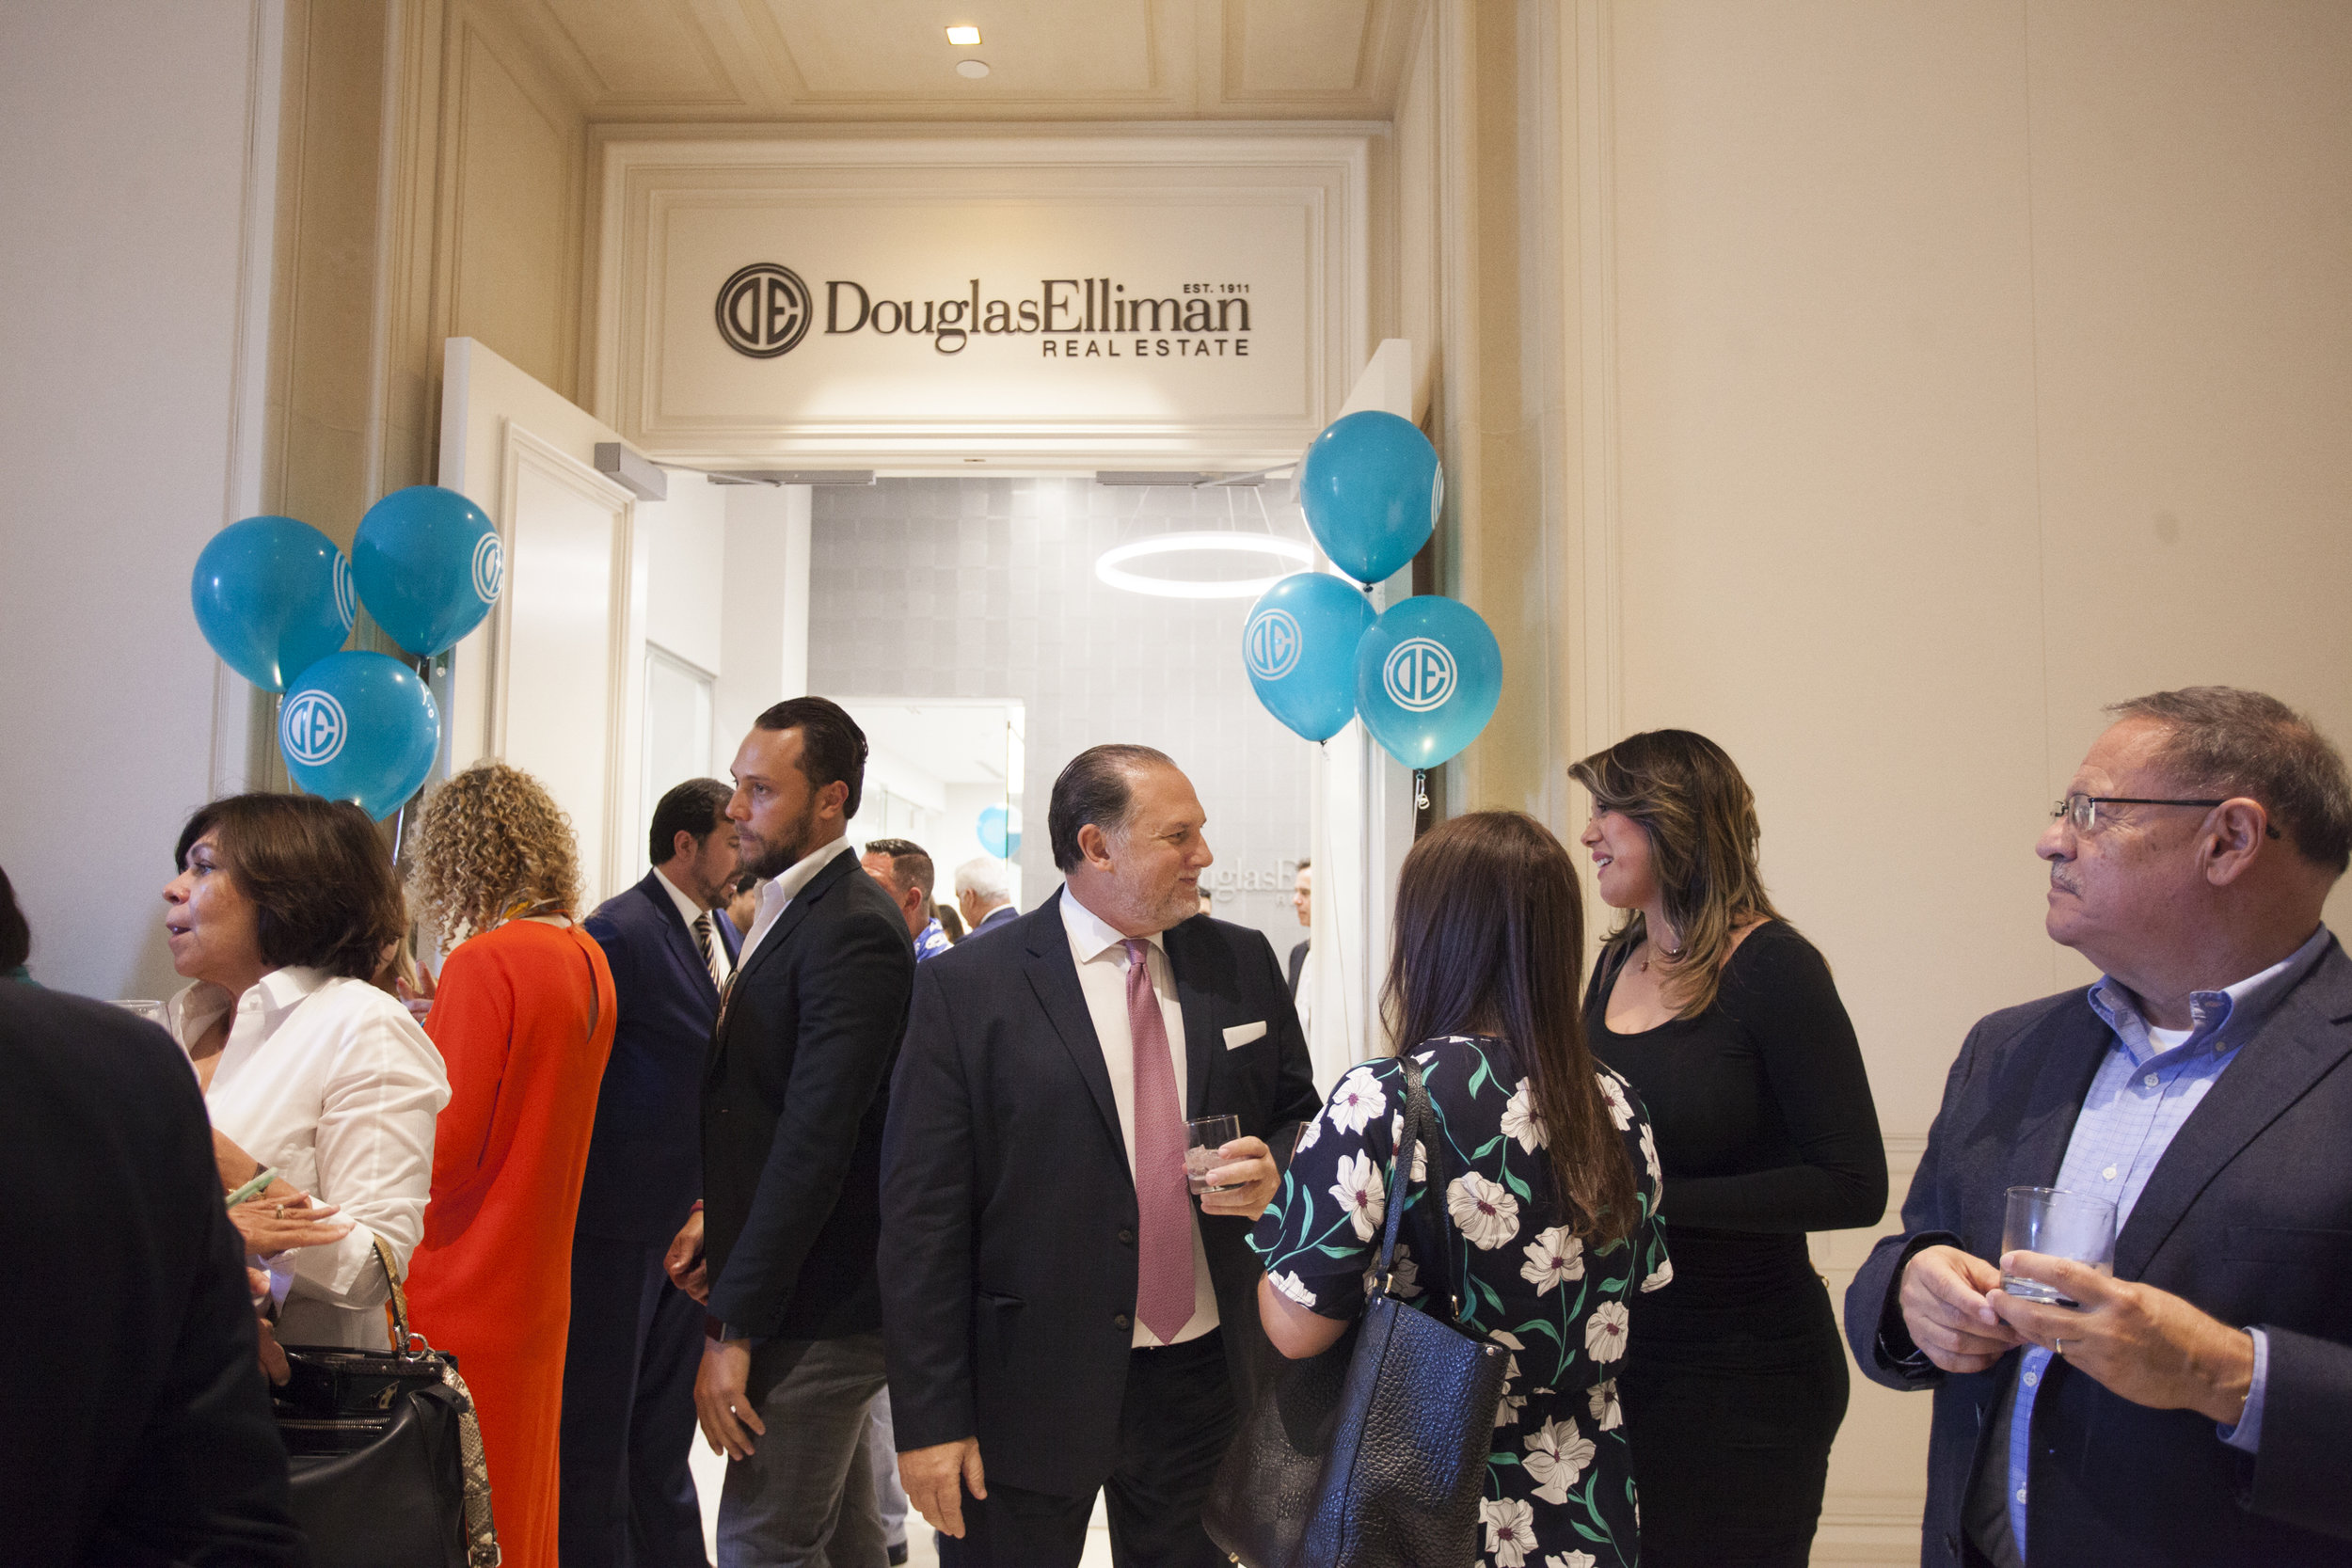 Douglas Elliman Celebrates The Grand Opening Of Its First Coral Gables Office Location